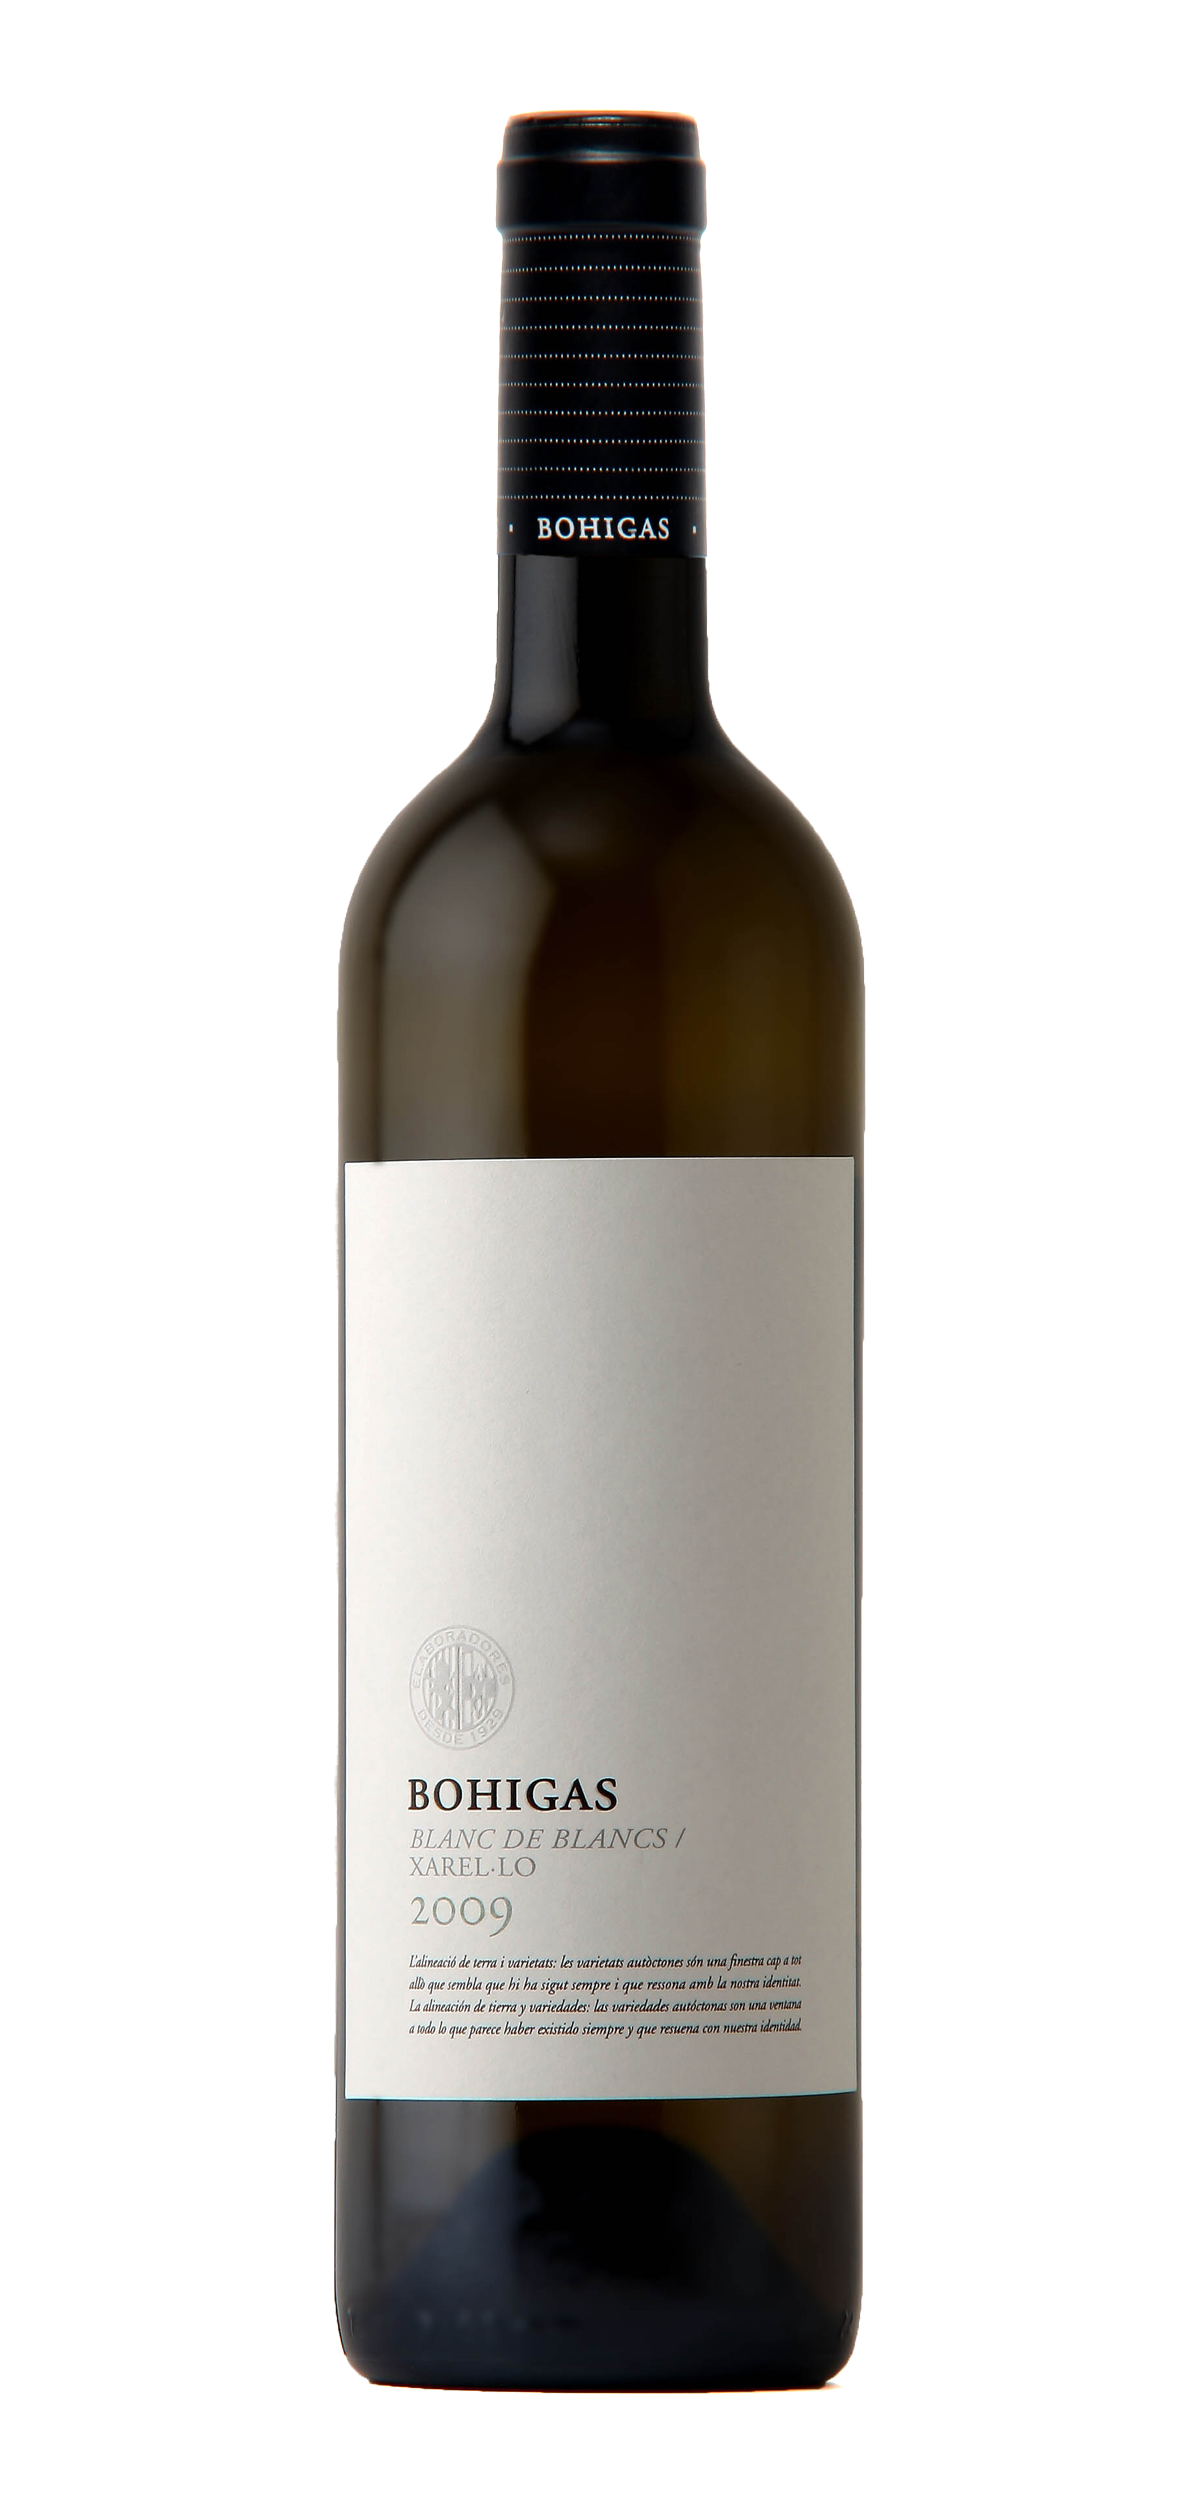 Bohigas wine bottle design